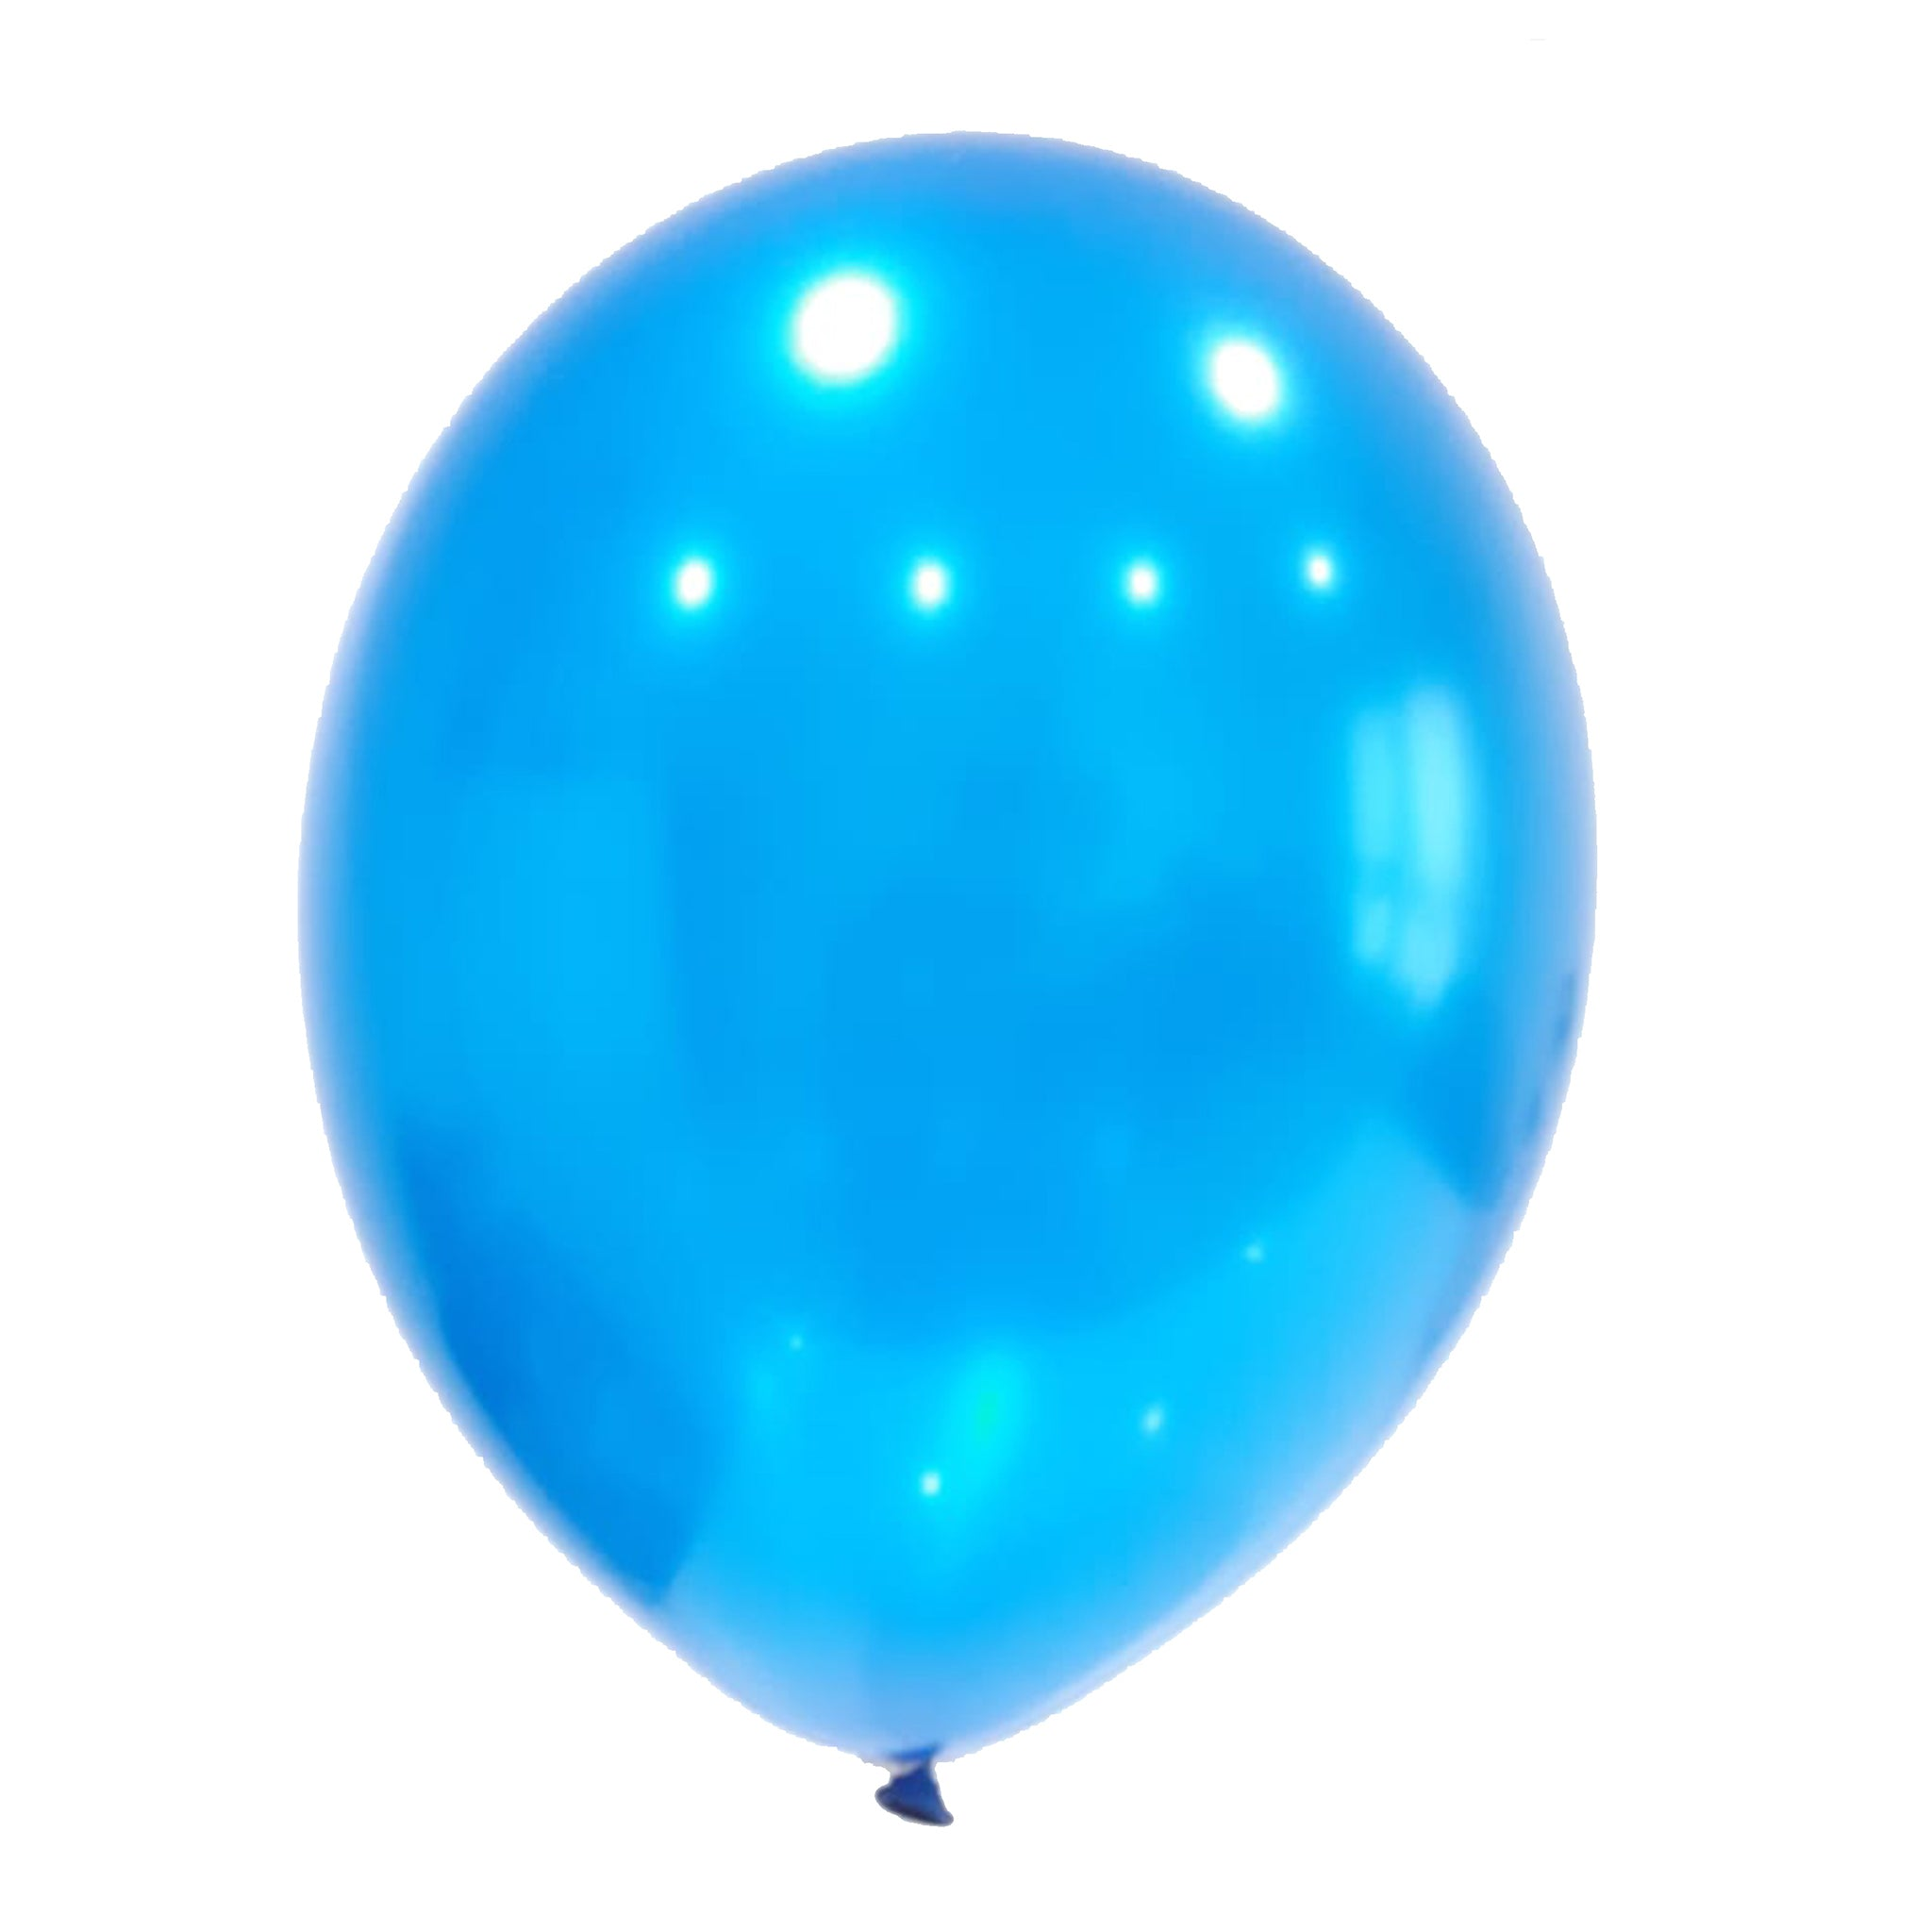 Caribbean blue latex balloon for sale online delivery in Dubai